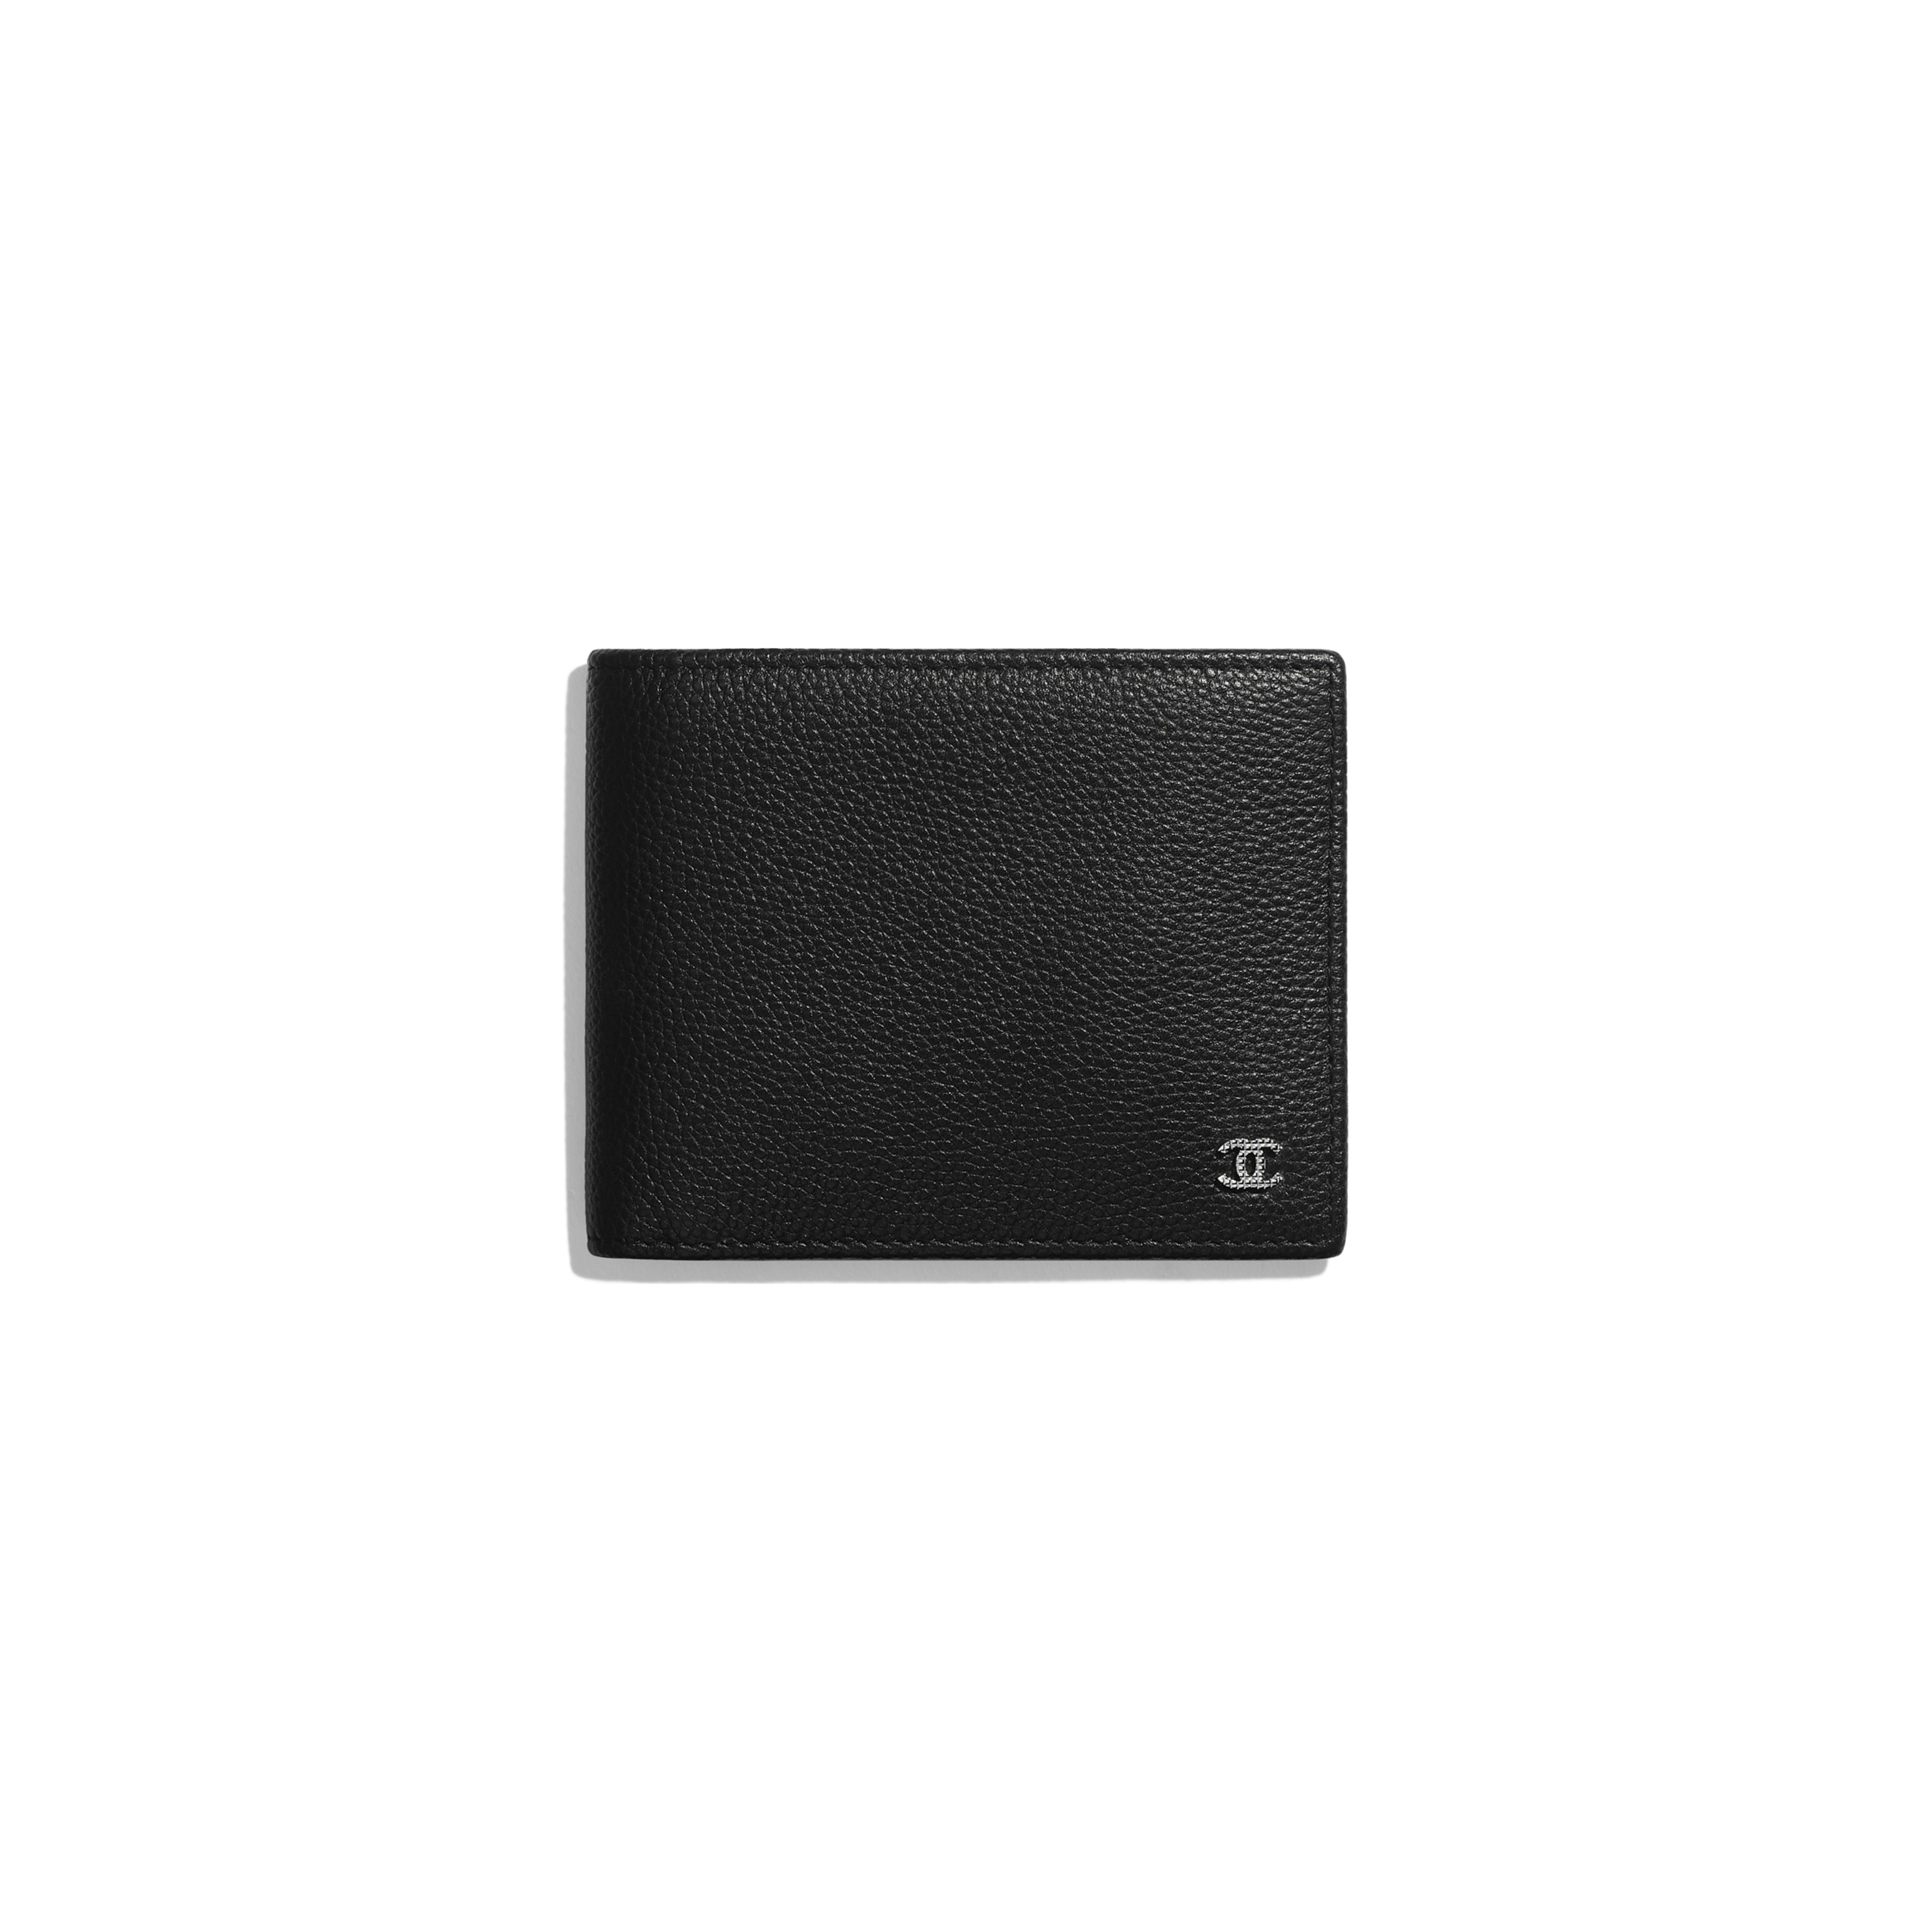 Small Flap Wallet - Black - Grained Calfskin & Ruthenium-Finish Metal - Default view - see full sized version